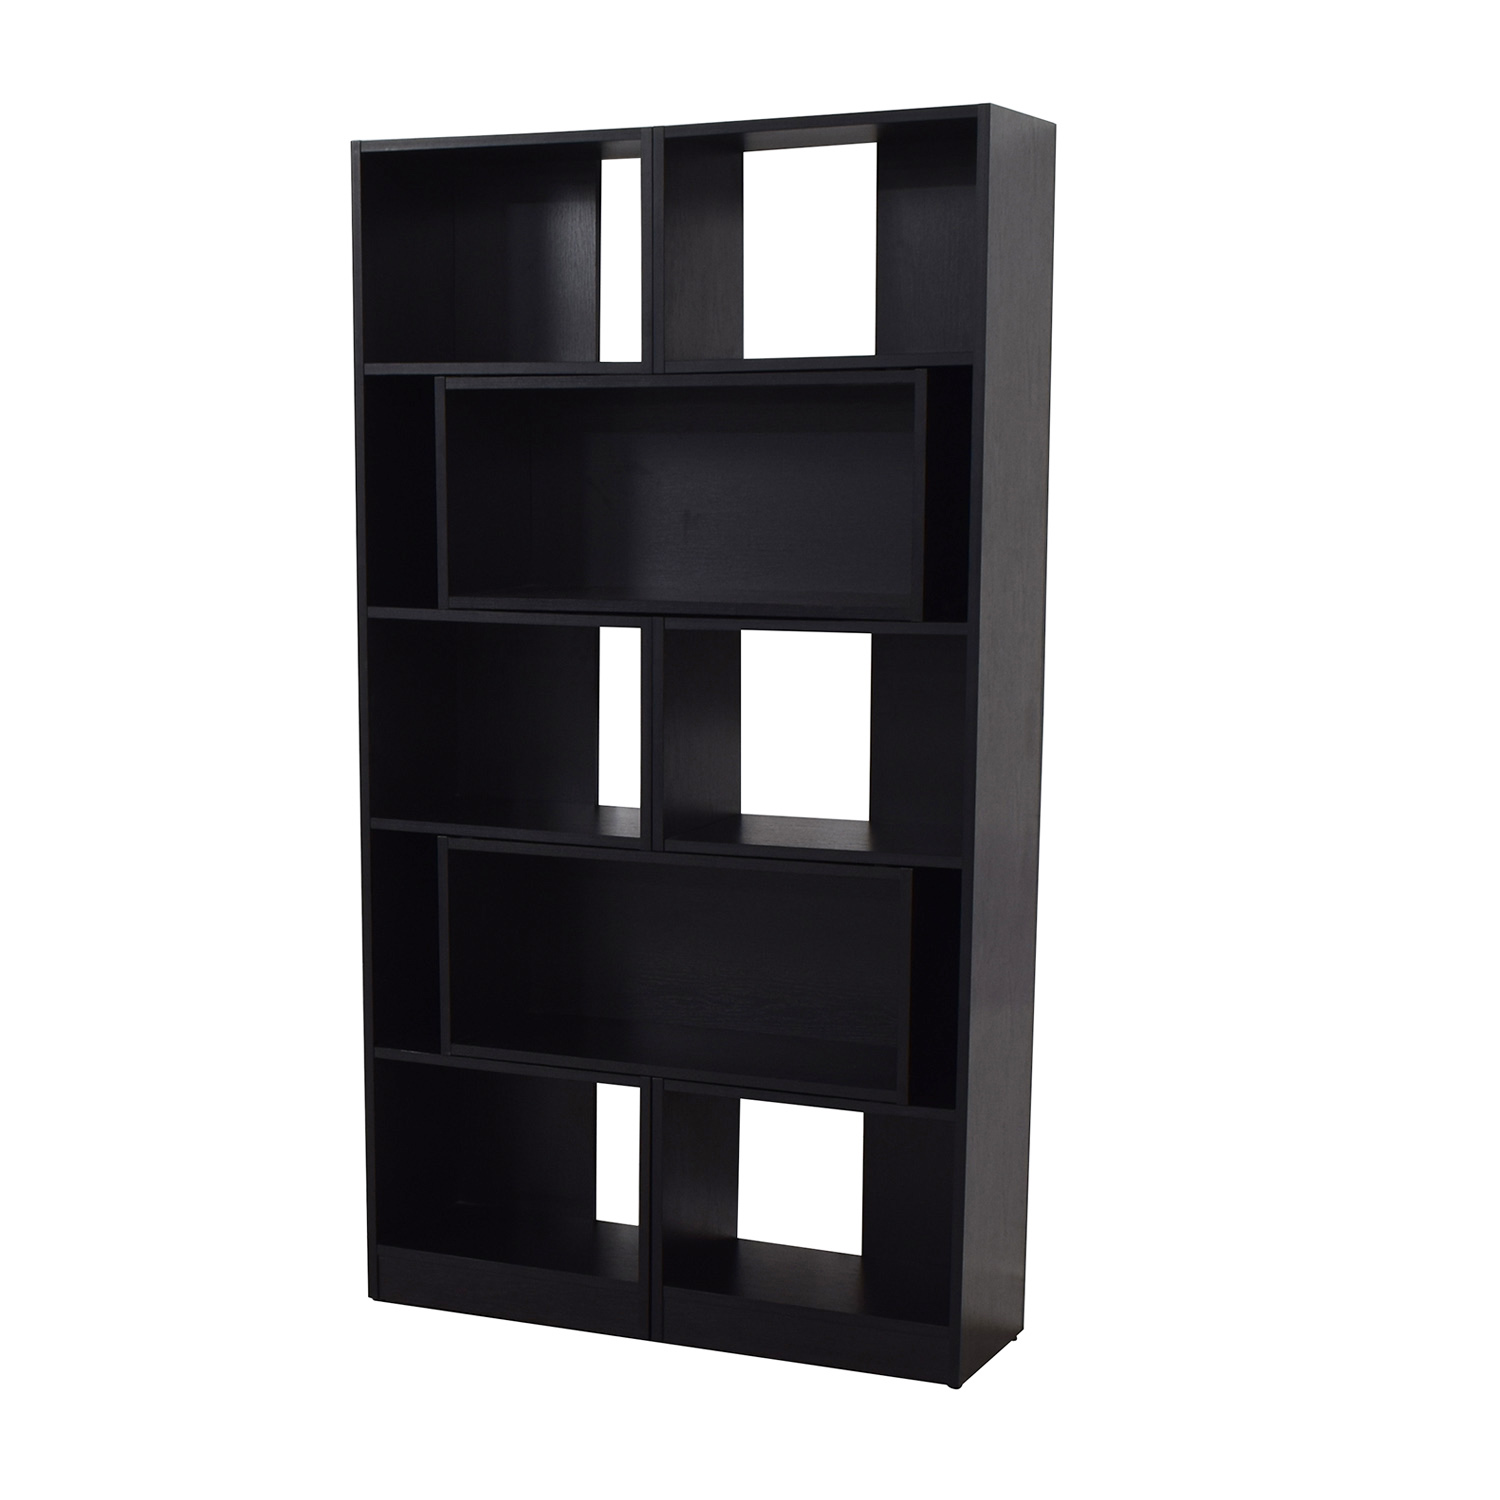 Crate & Barrel Crate & Barrel Puzzle Black Extendable Bookcase coupon